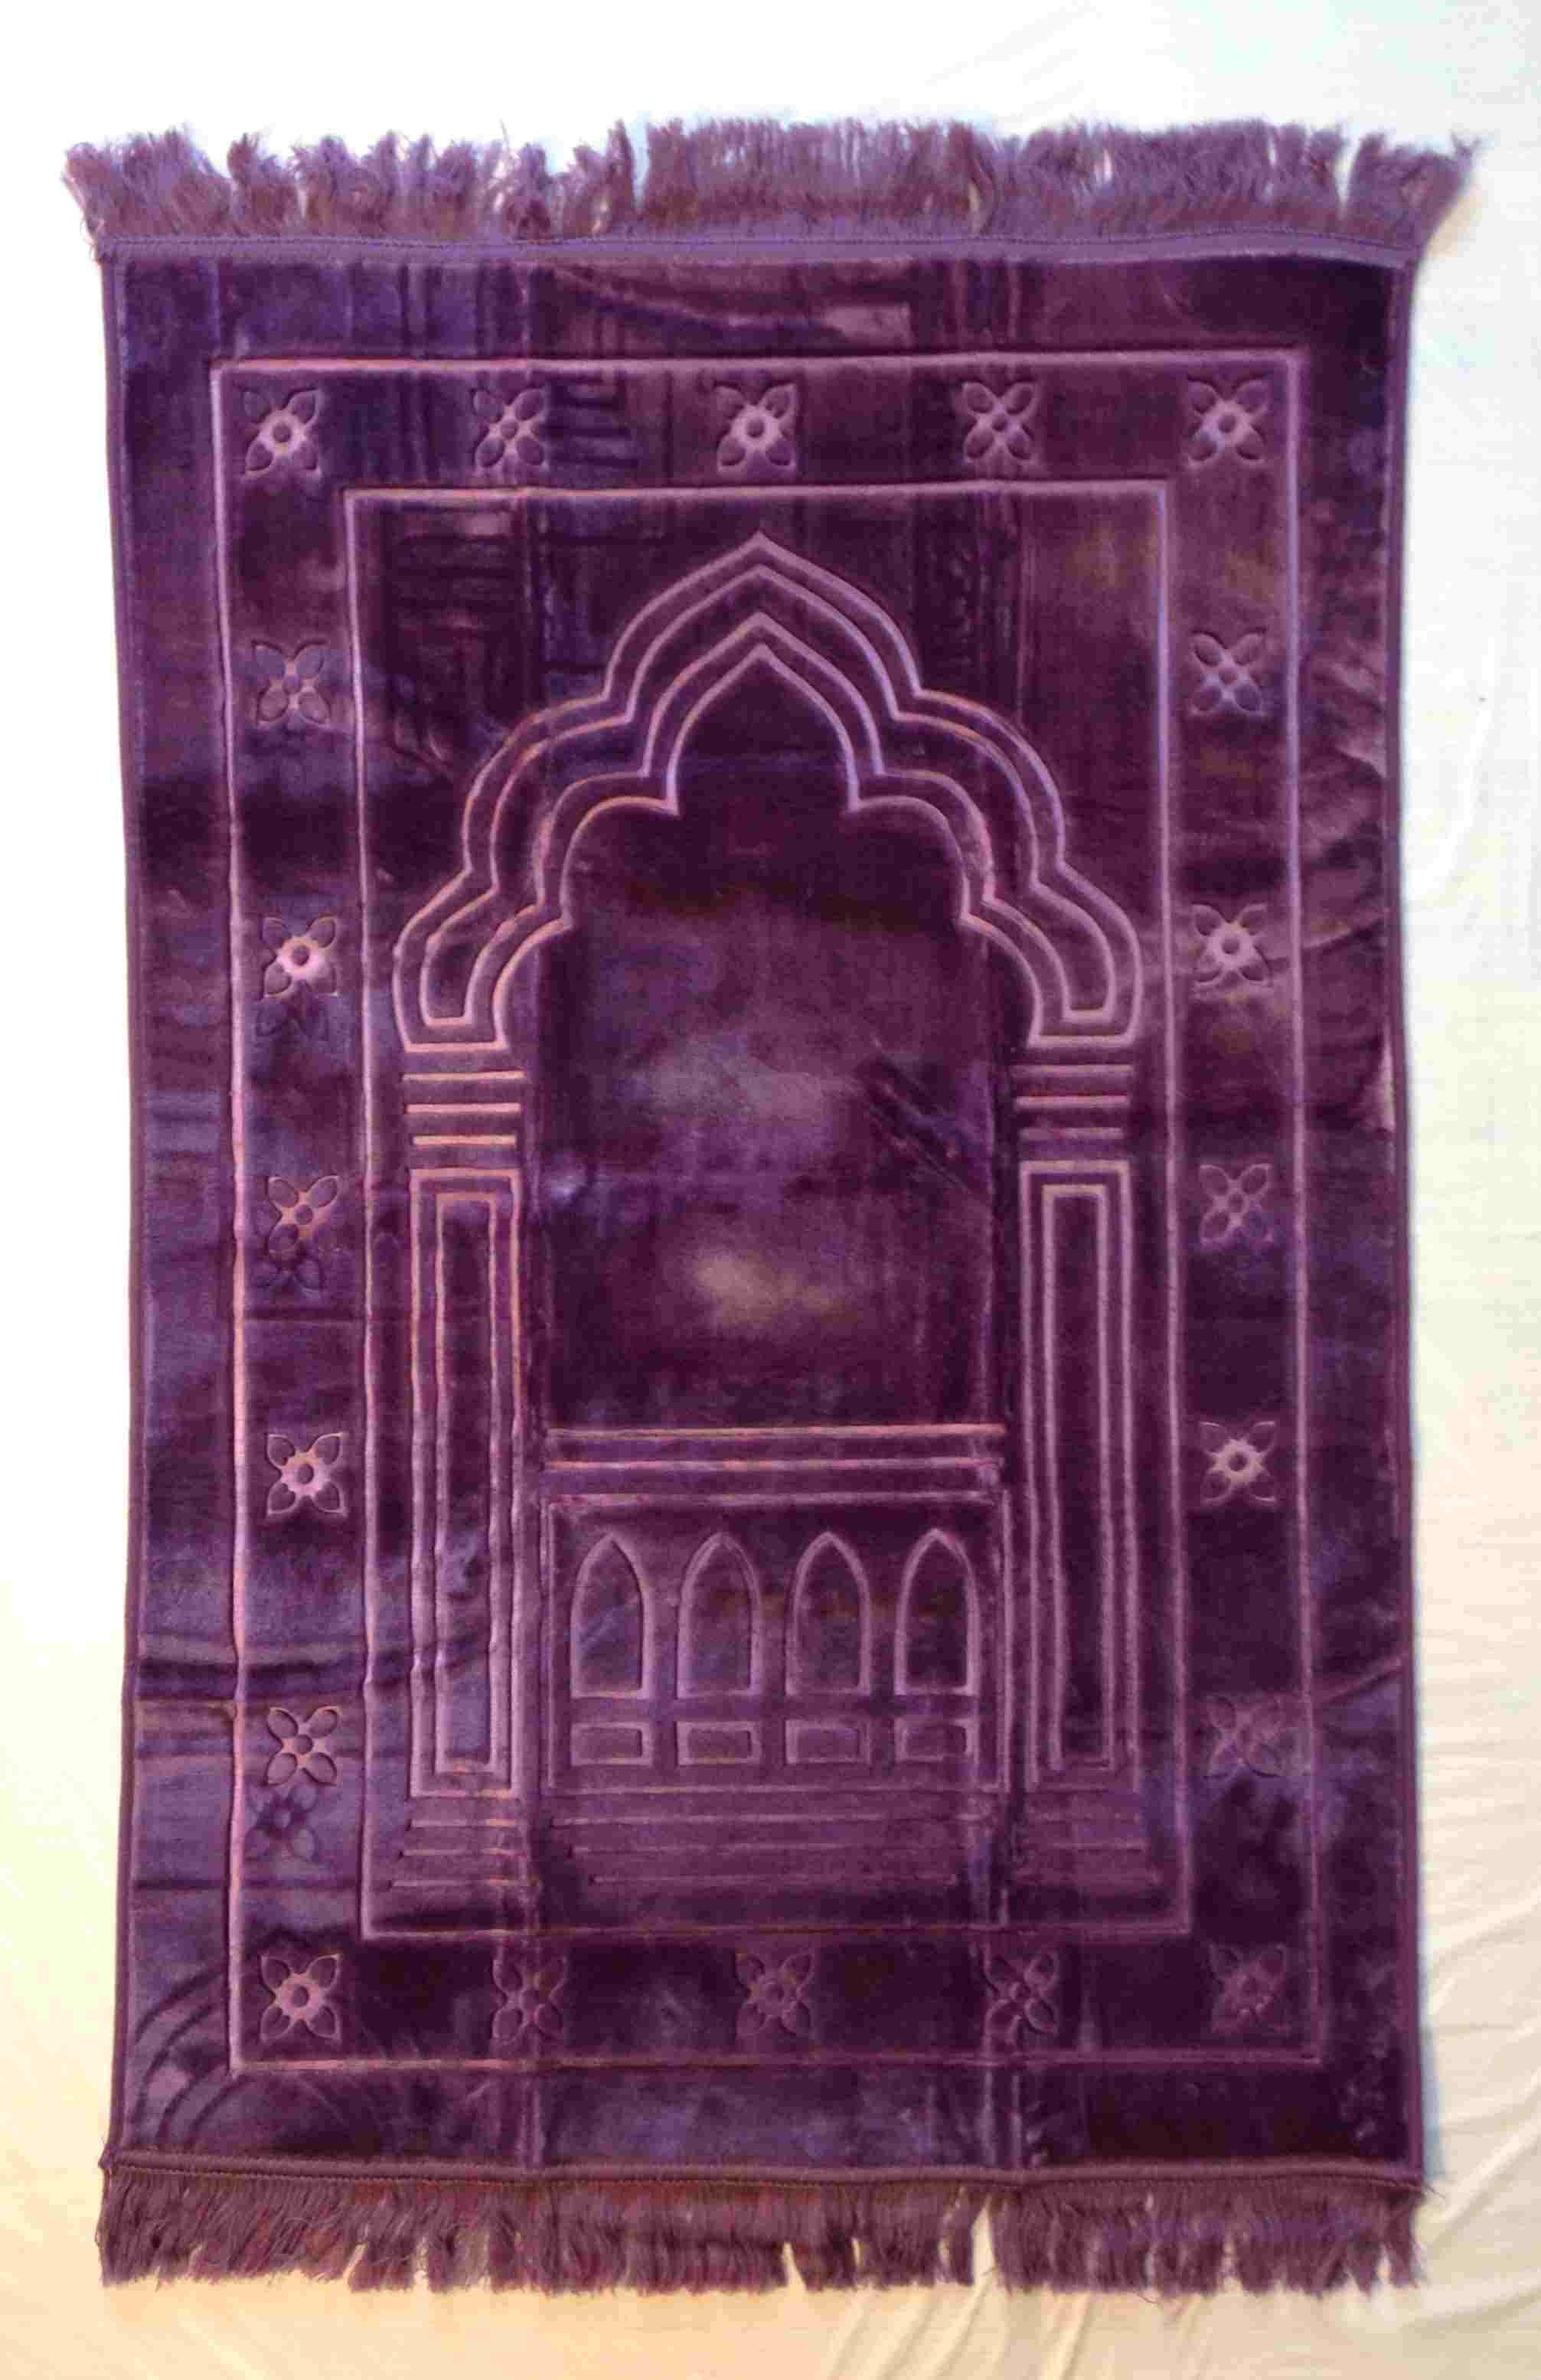 Luxurious Muslim Prayer Rug/Mat (Sajjada/Janamaz) by Safi- PURPLE